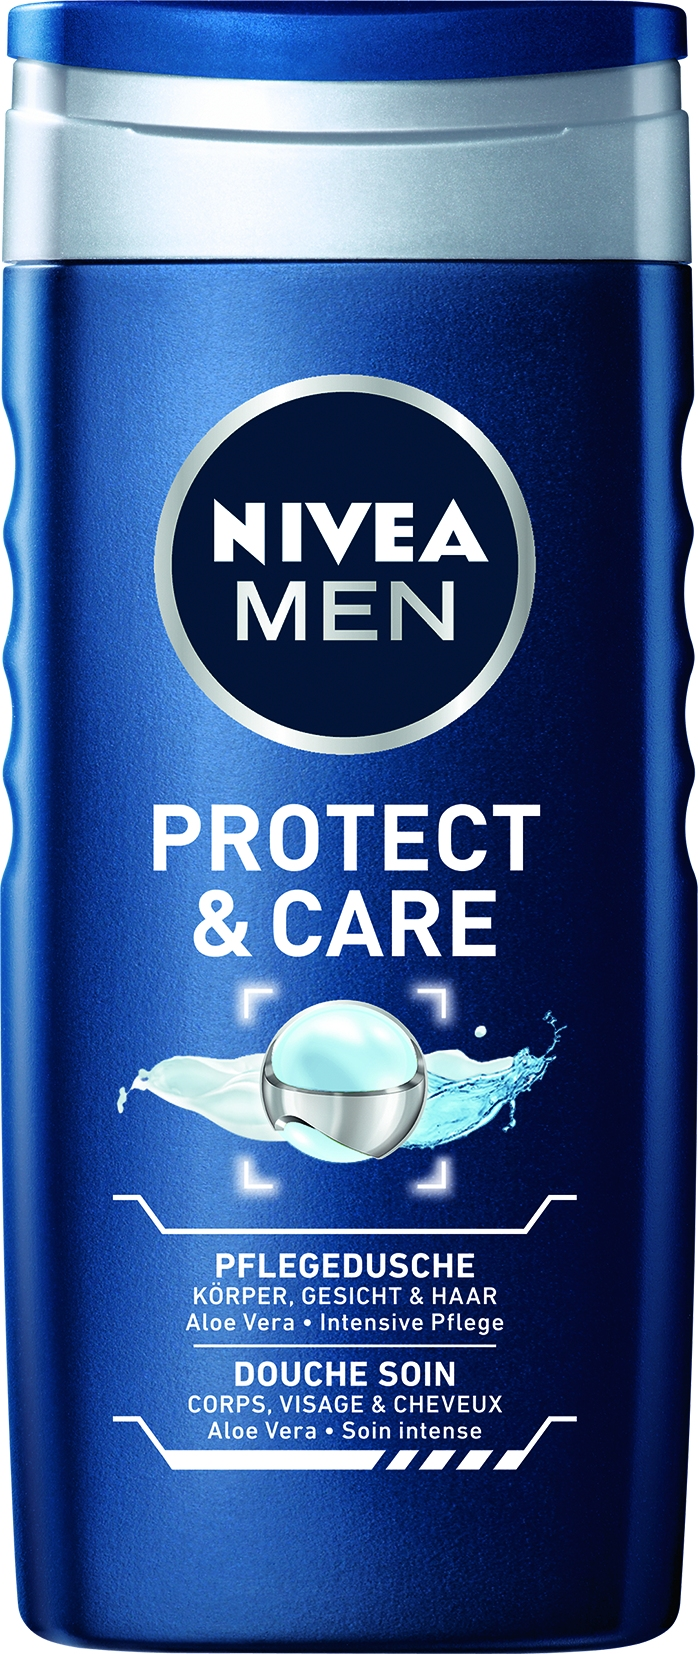 Dusche for men Original Care